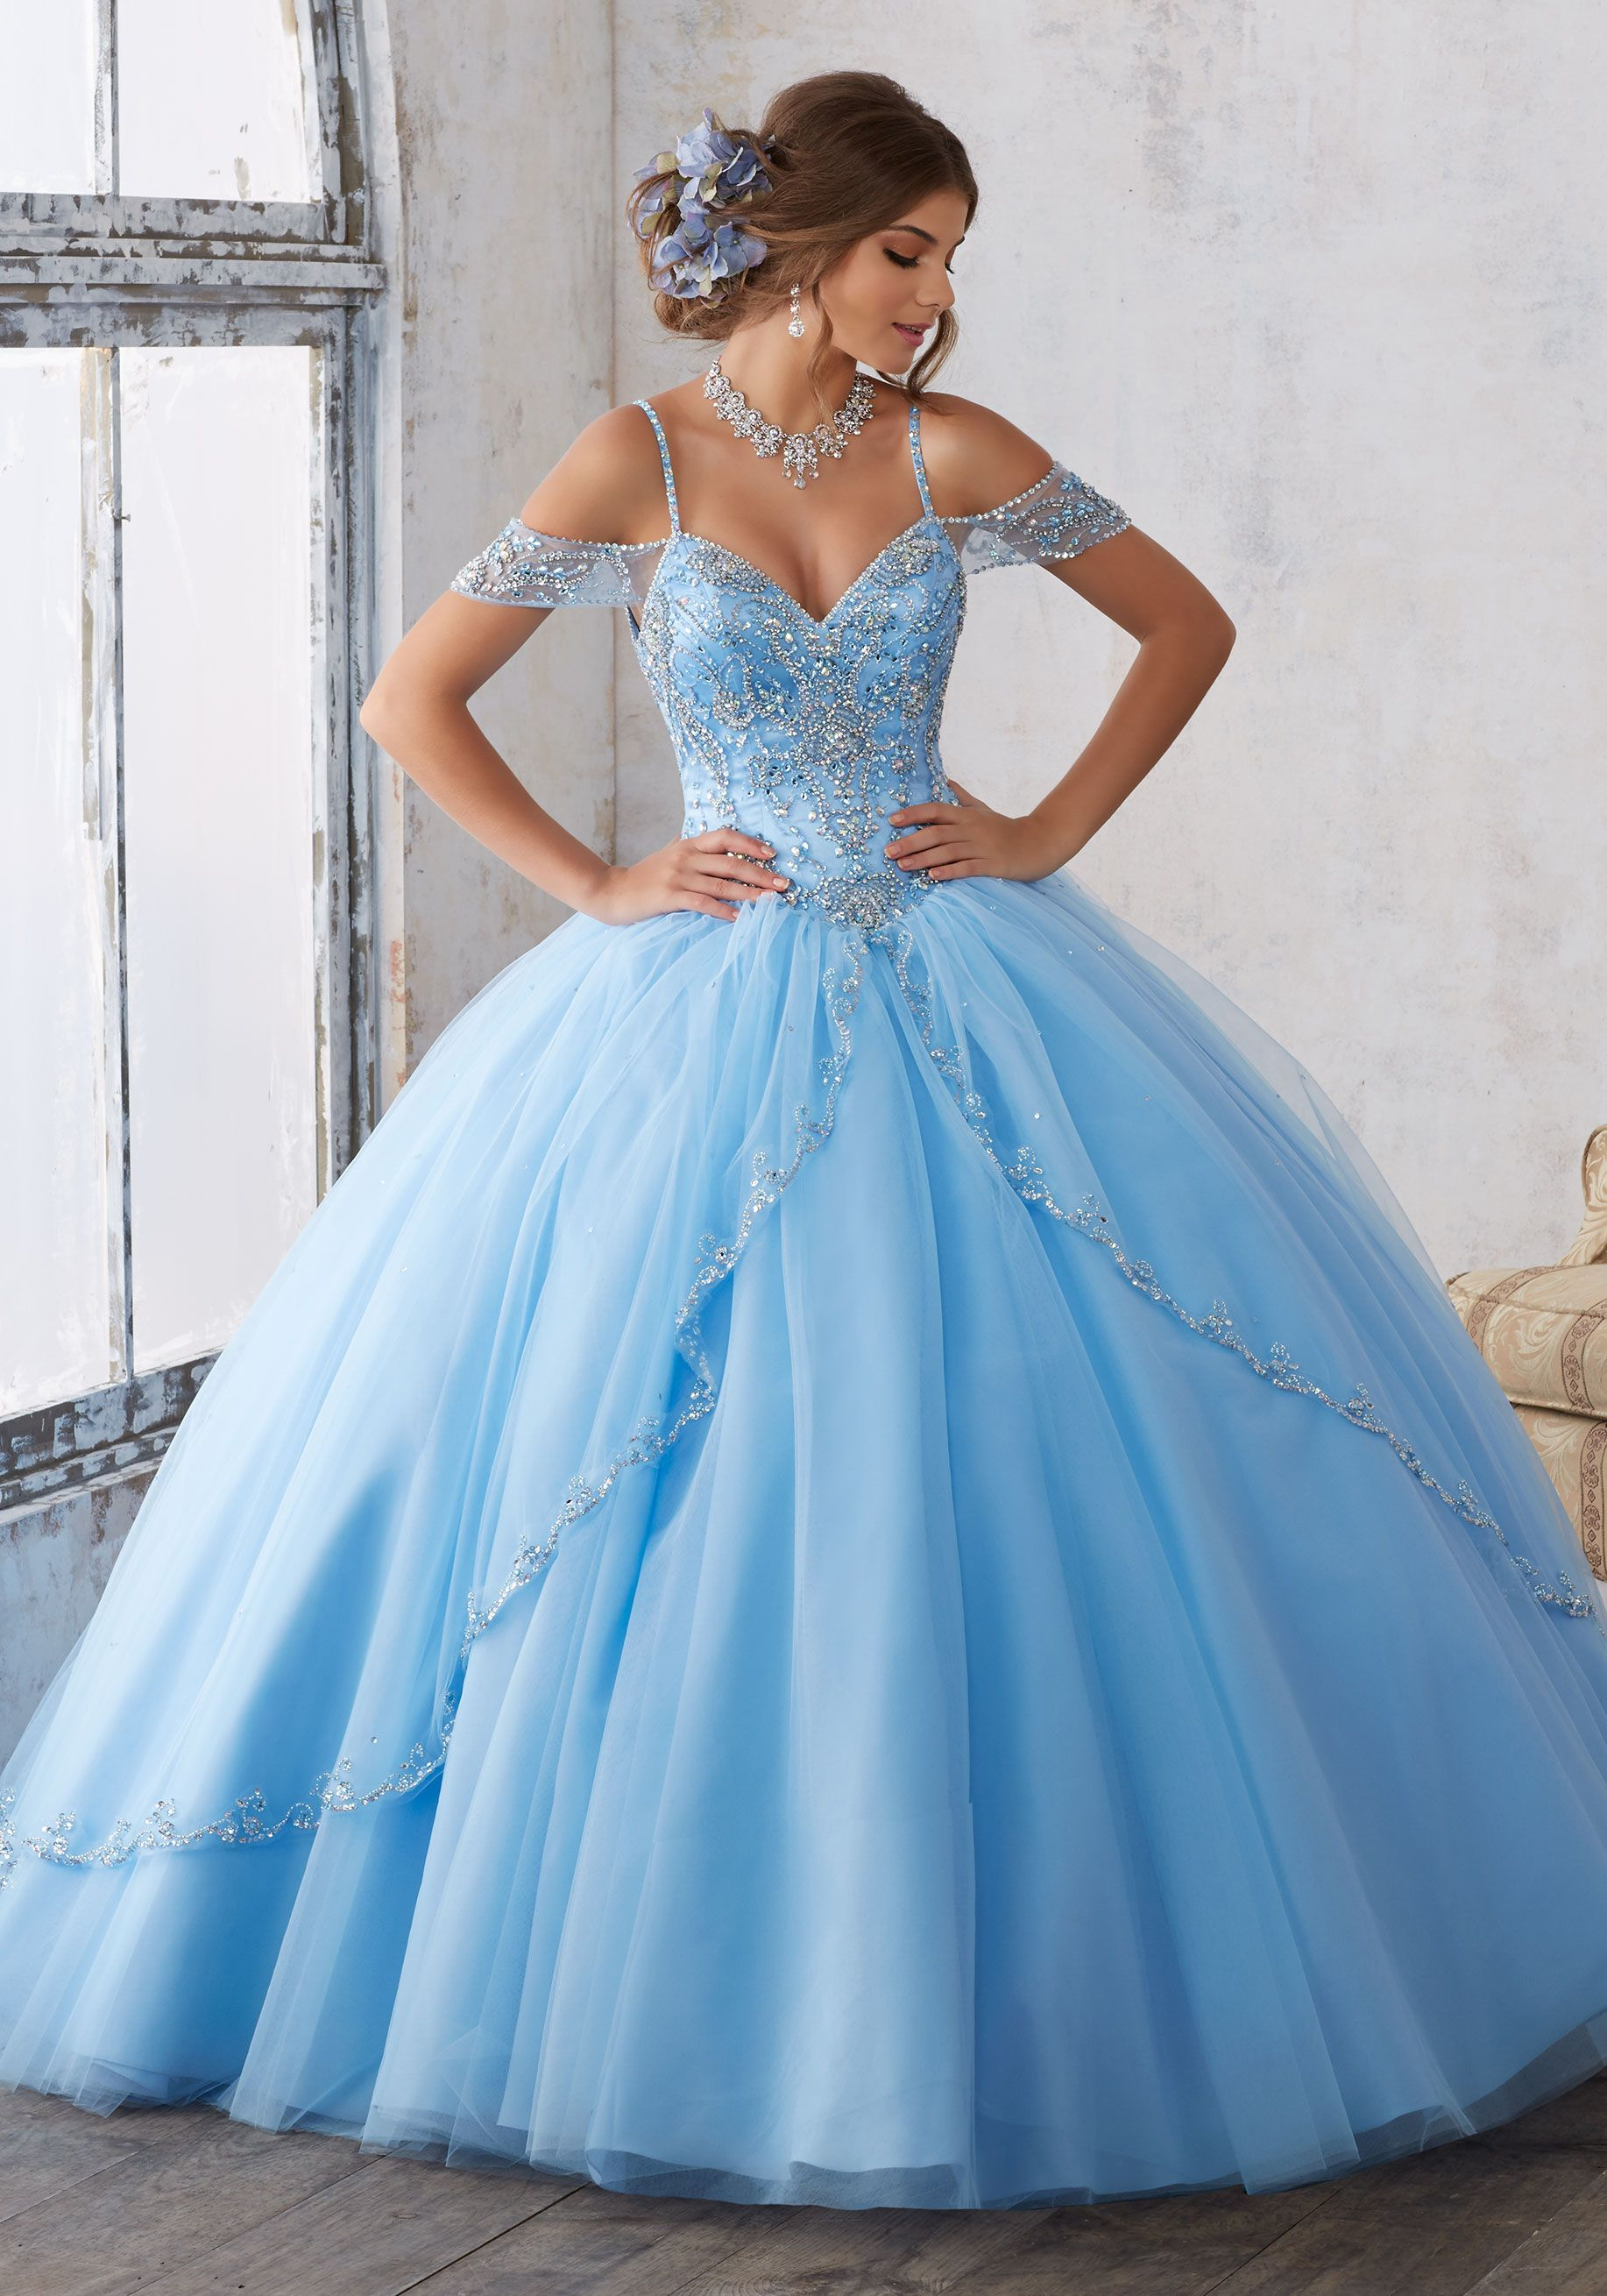 0db8a8d1726 Morilee Quinceanera Dresses STYLE NUMBER  89135 Jeweled Beading on a Split  Front Tulle Ballgown Dramatic and Elegant